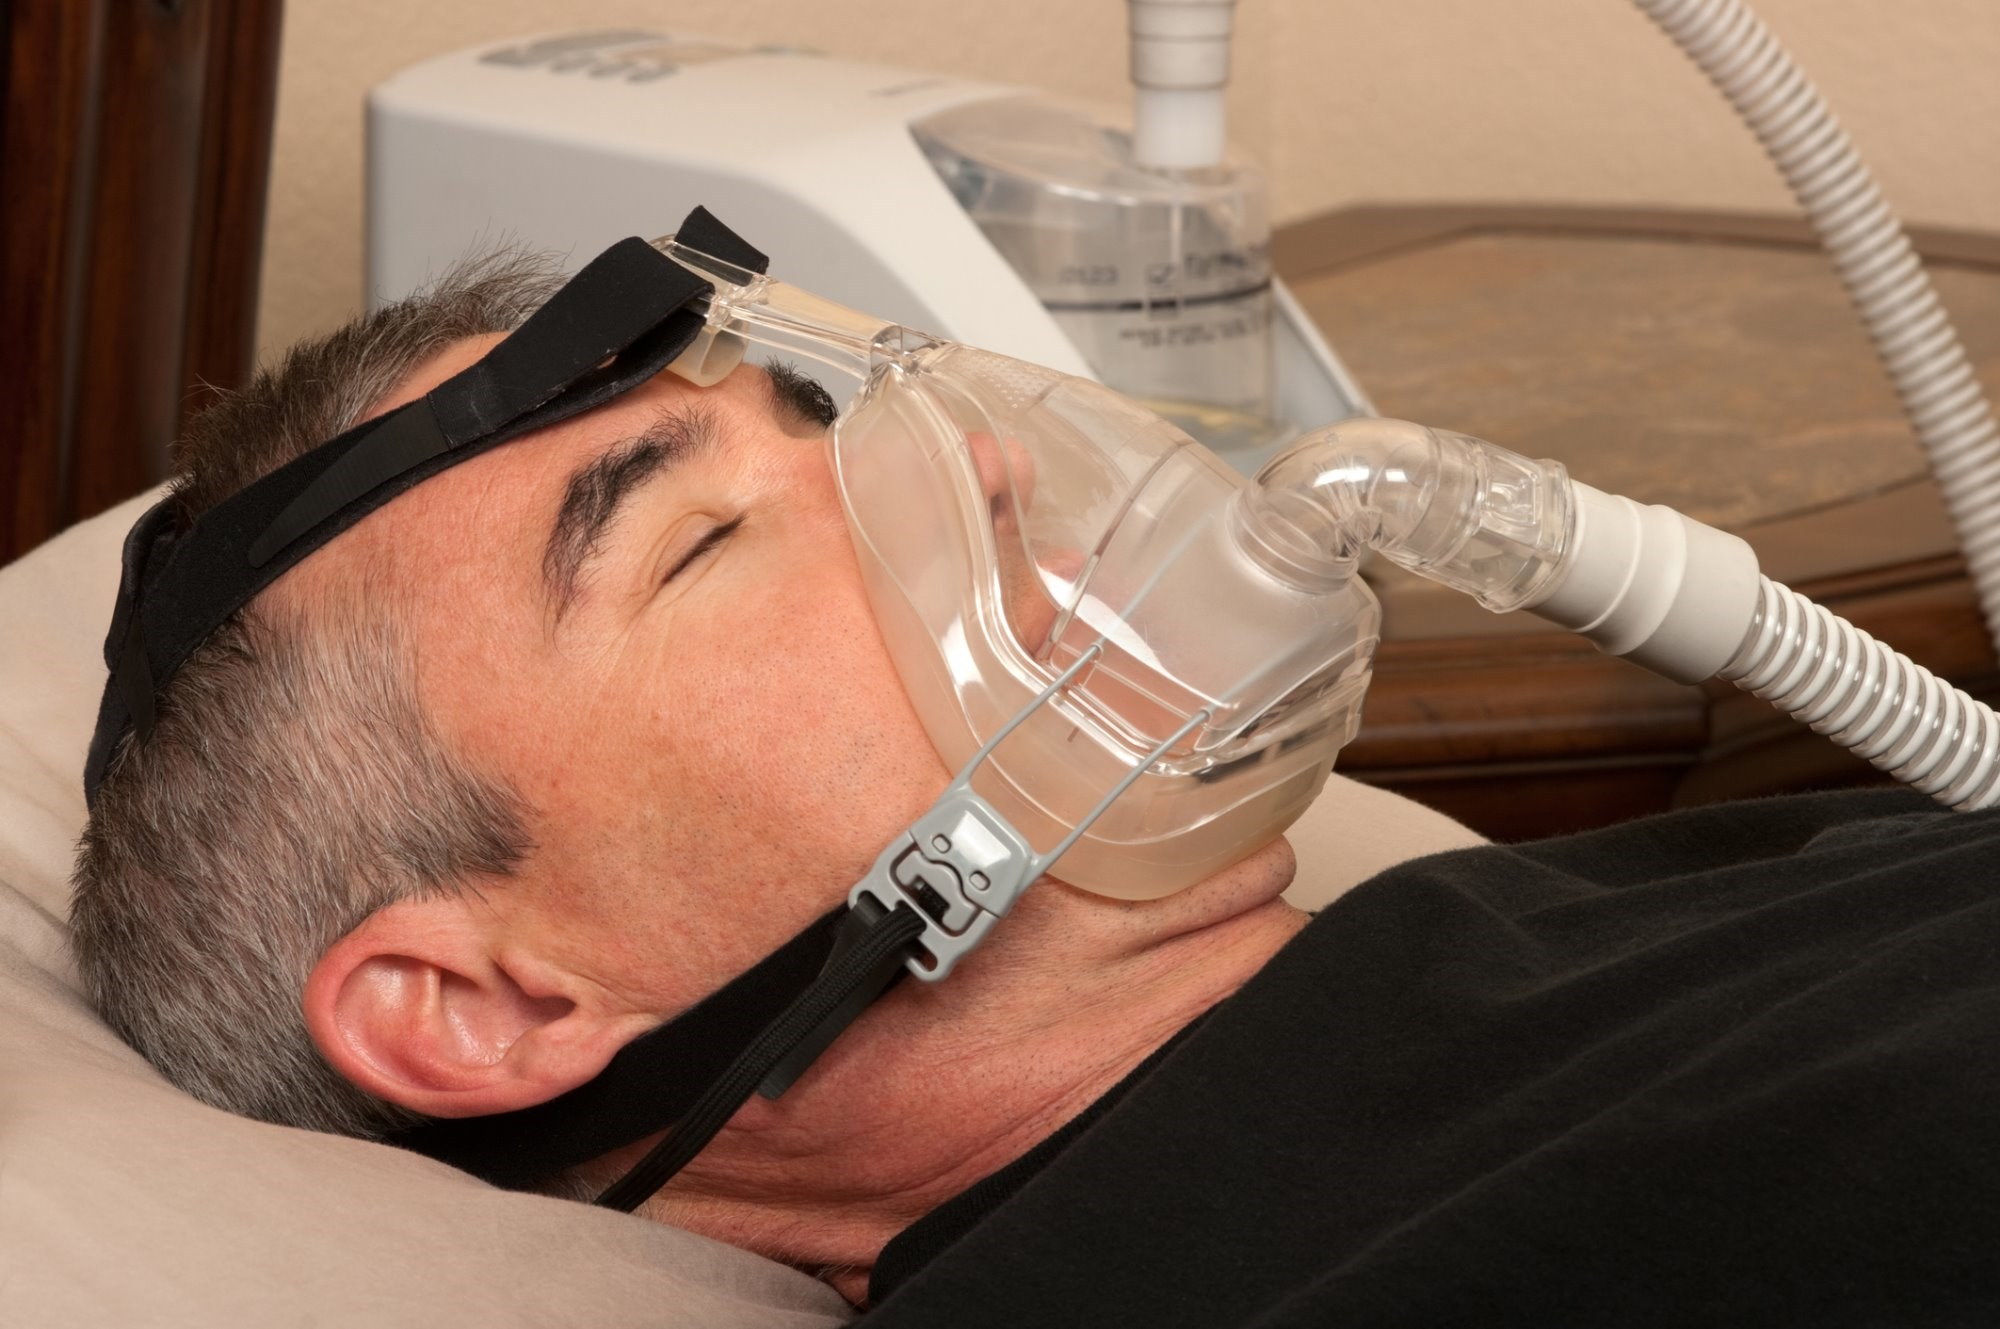 Sleep apnea with resistant HTN linked to increased risk of ischemic heart event, congestive heart failure.